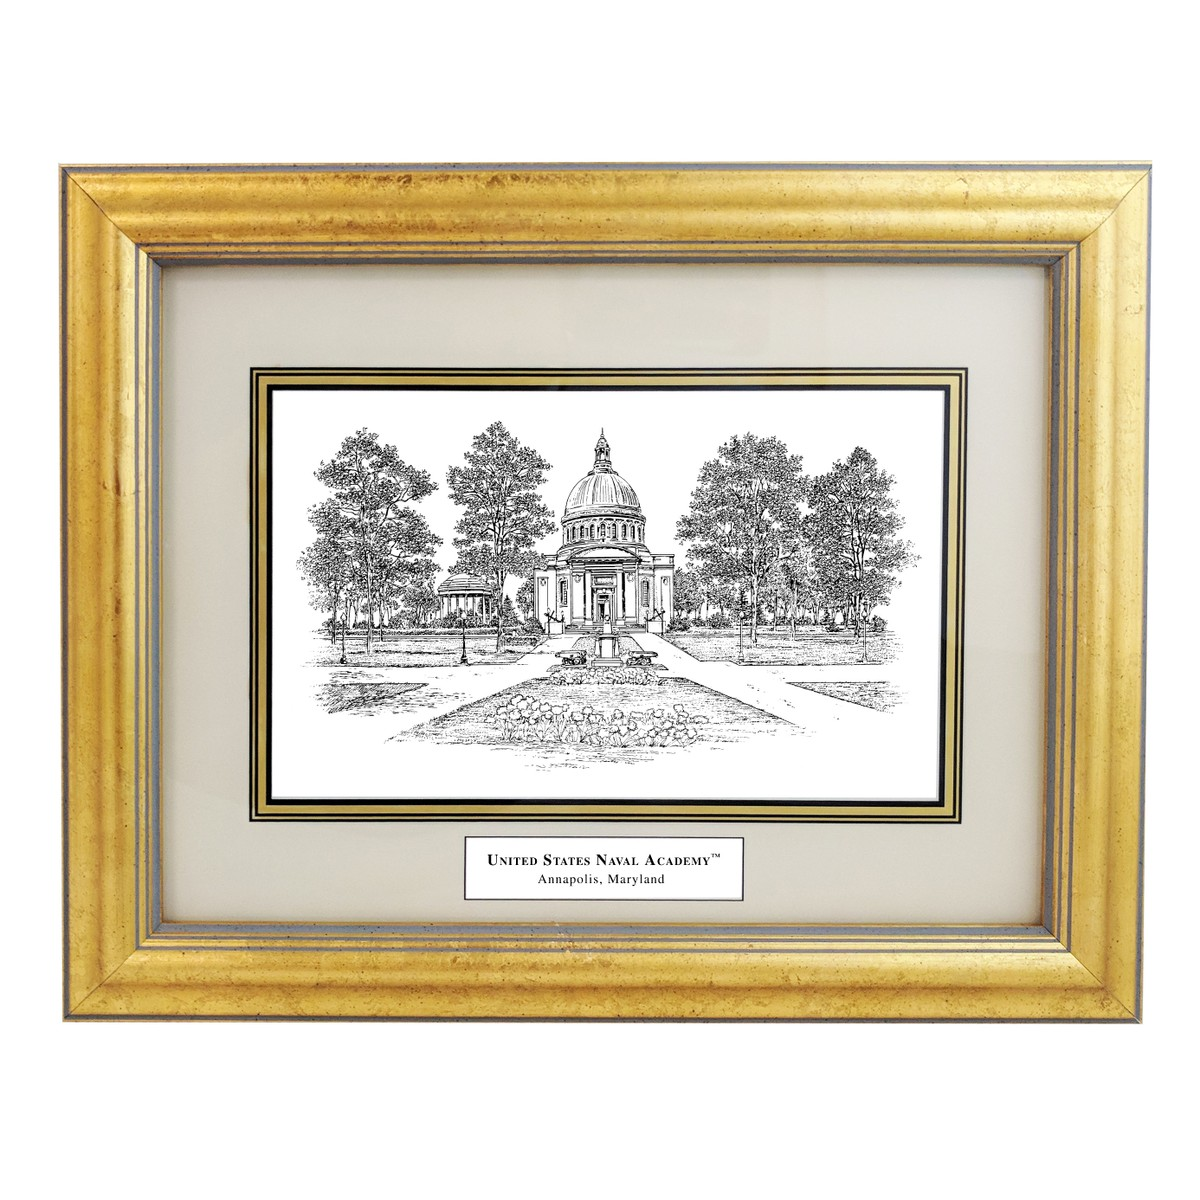 Framed Pen And Ink Us Naval Academy Print At M Lahart